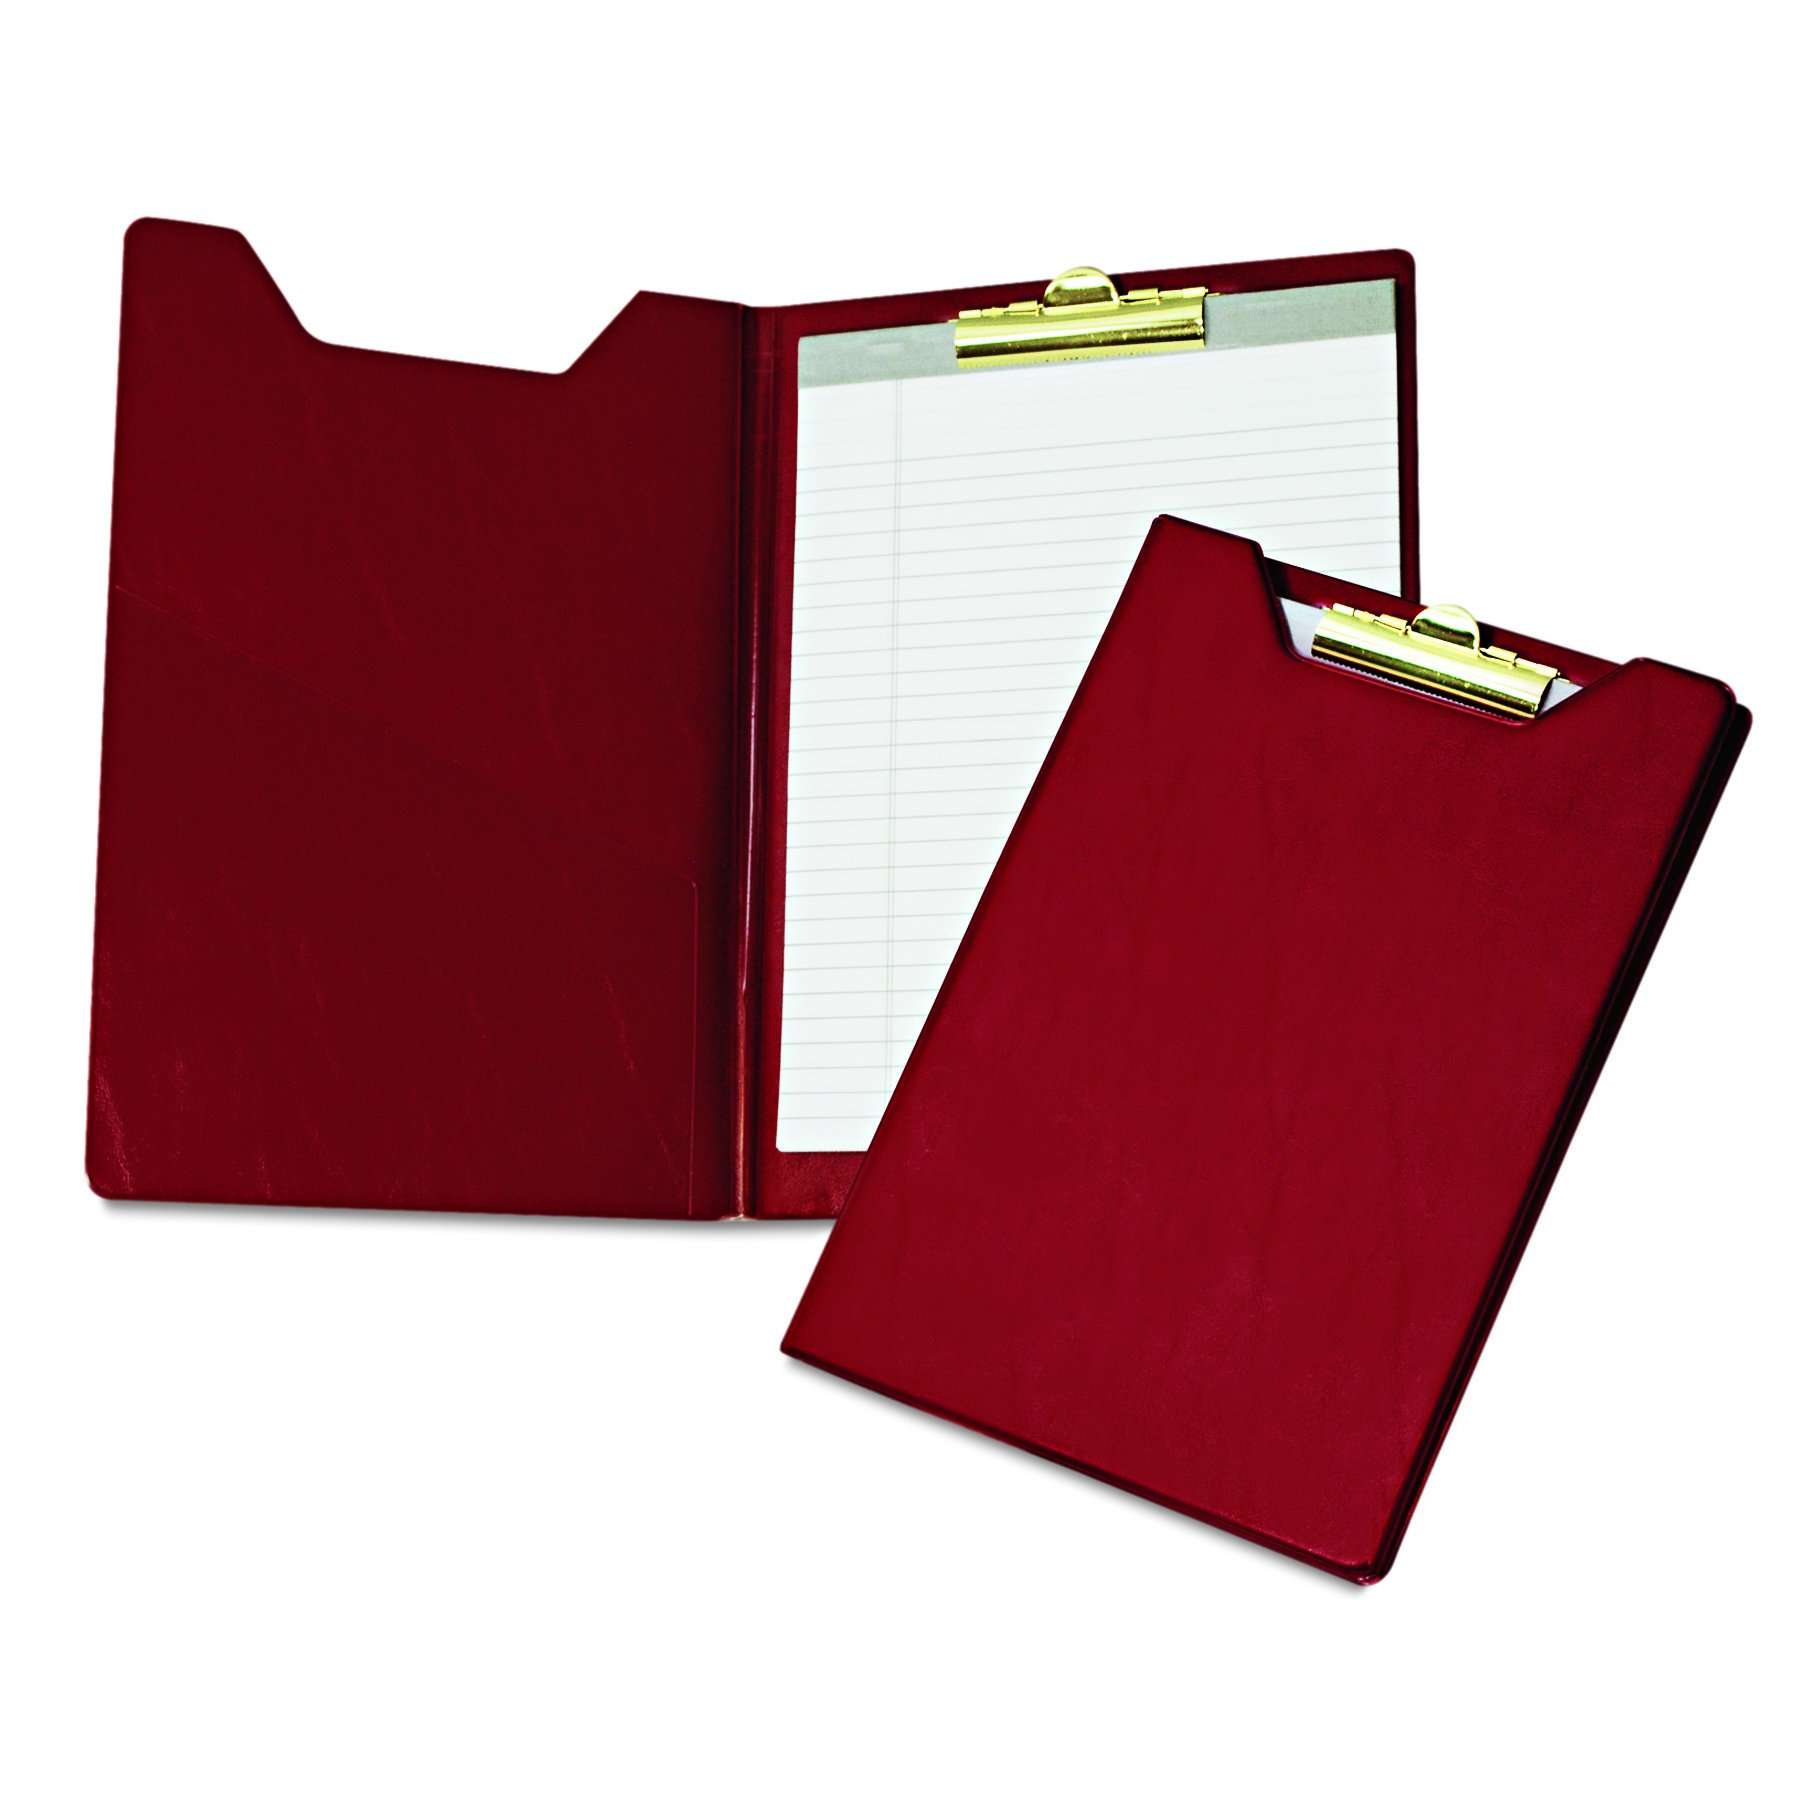 Samsill 71414 Value Padfolio, Heavy Vinyl, Brass Clip, Writing Pad, Inside Pocket, Burgundy